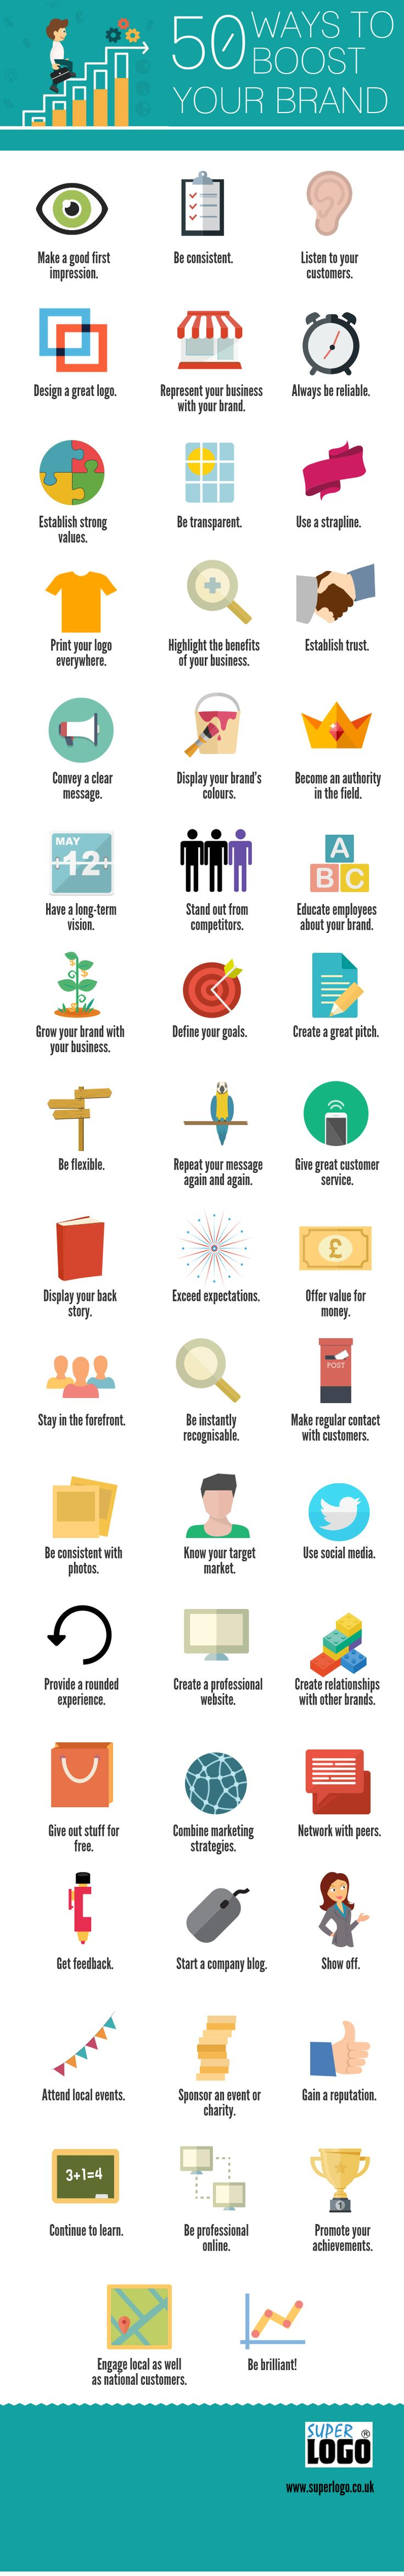 50 Quick and Simple Tips to Boost Your Brand